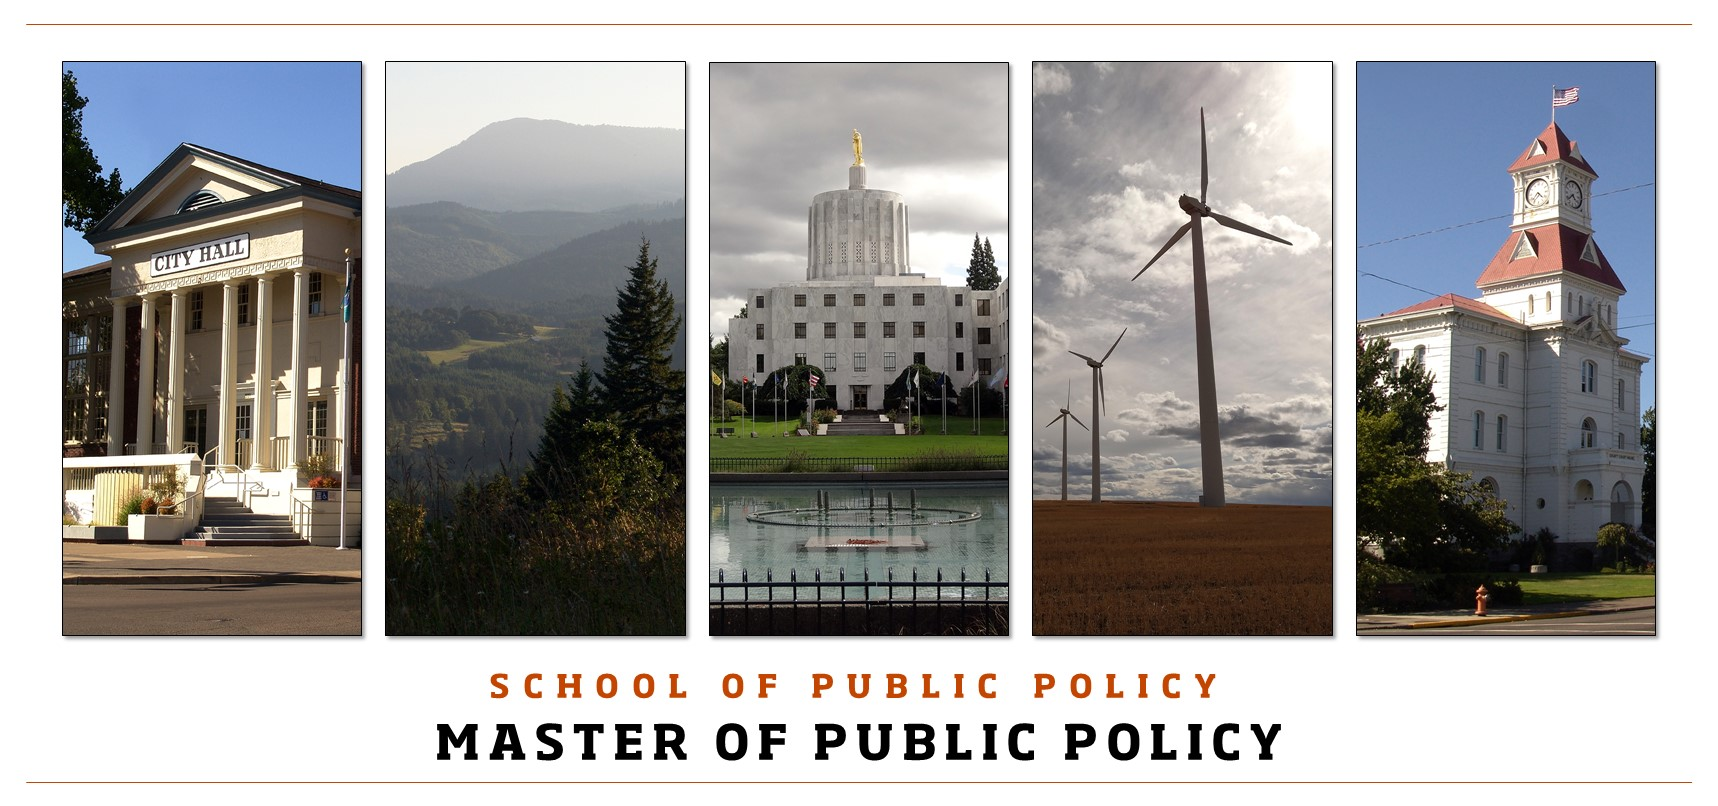 School of Public Policy Master of Public Policy